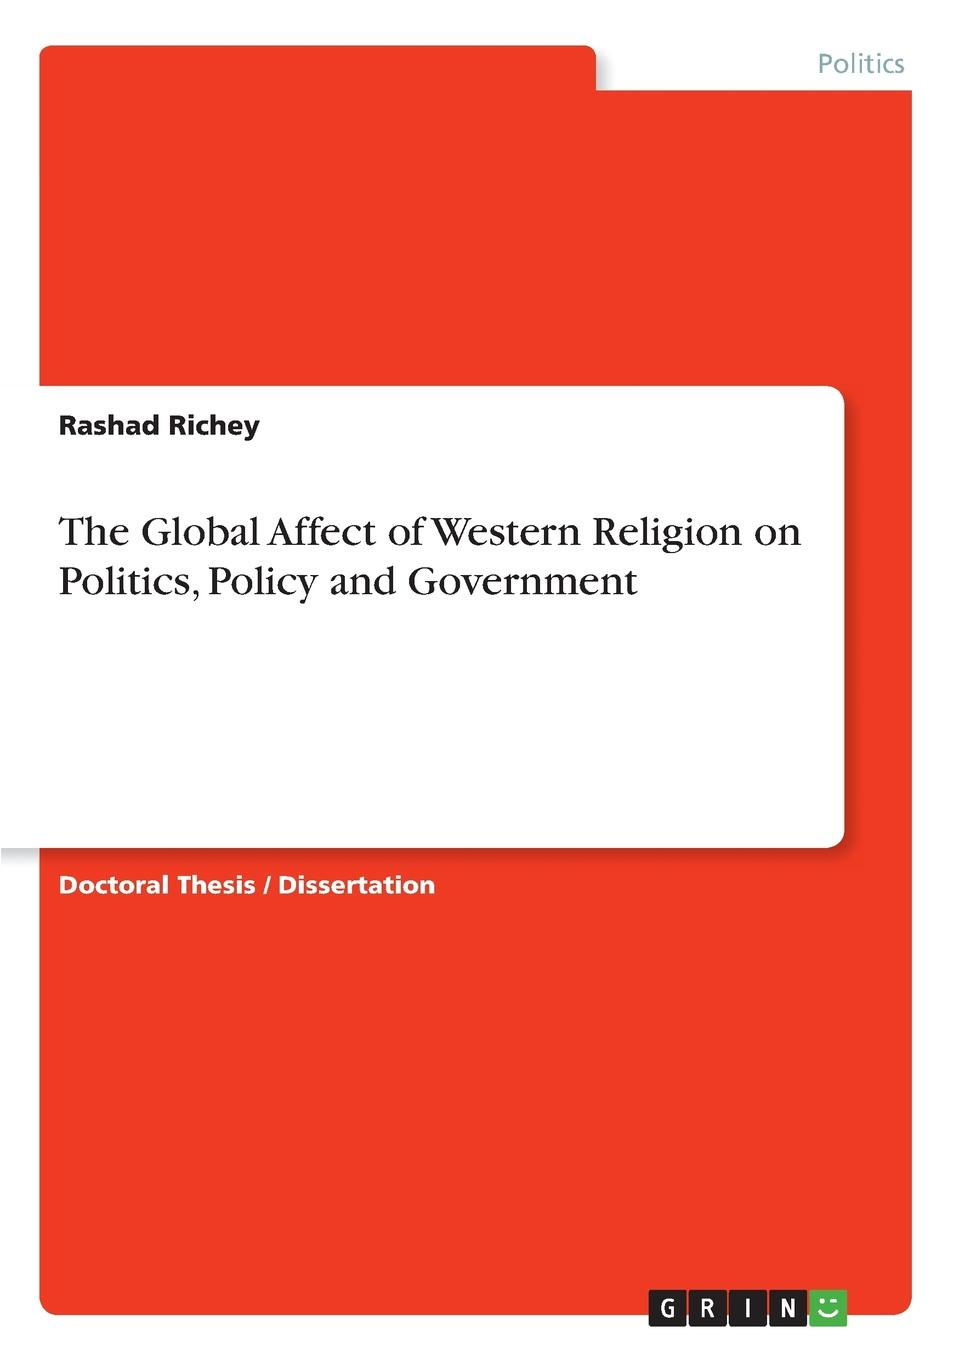 Rashad Richey The Global Affect of Western Religion on Politics, Policy and Government oduor benson the use of narrative voices to present ideological dispensation